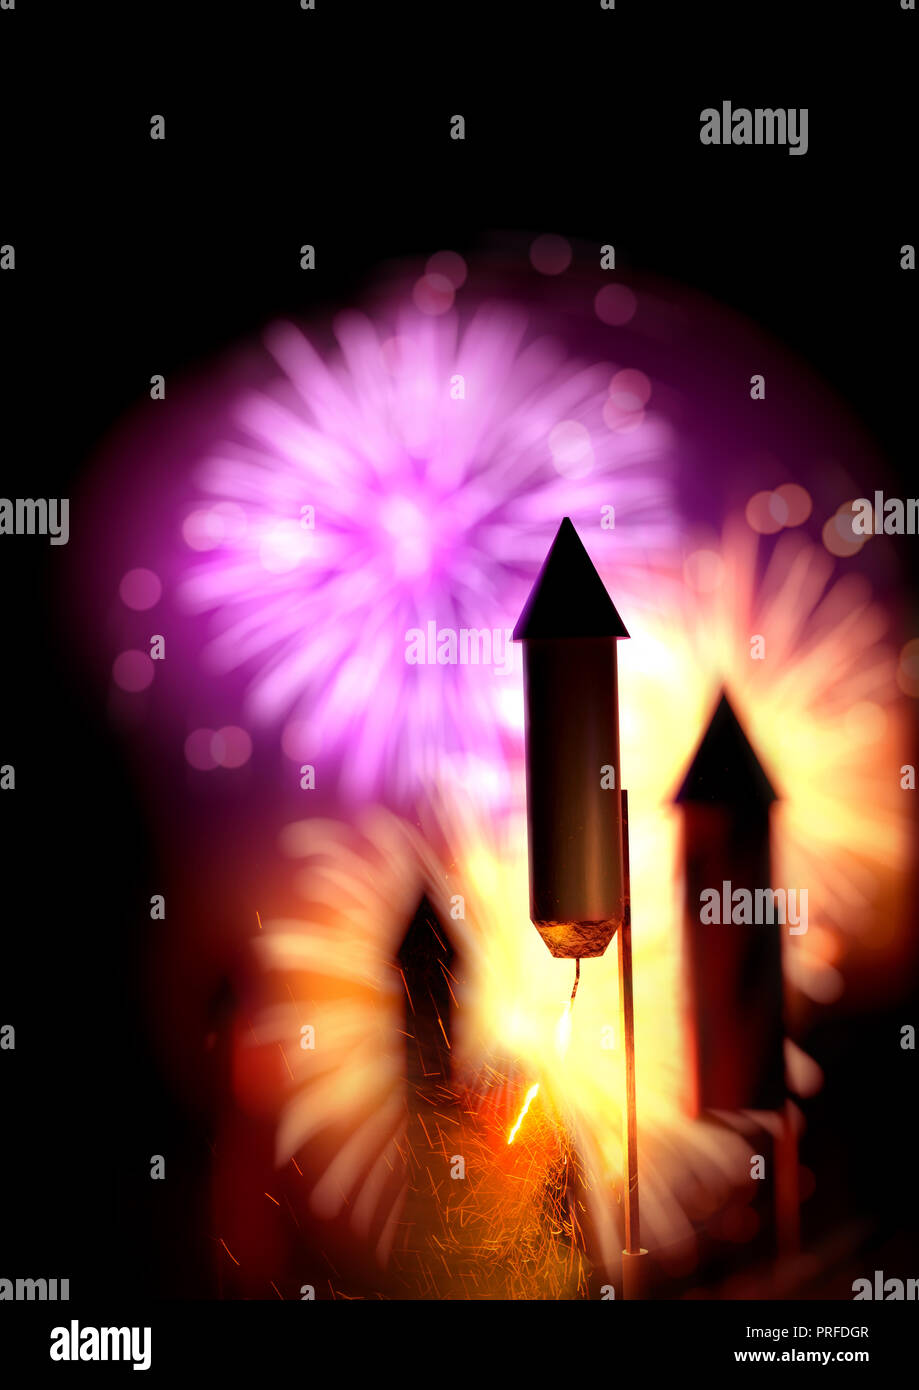 Close up image of firework rockets with lit fuses and a large display in the background. Bonfire night background - 3D illustration. Stock Photo